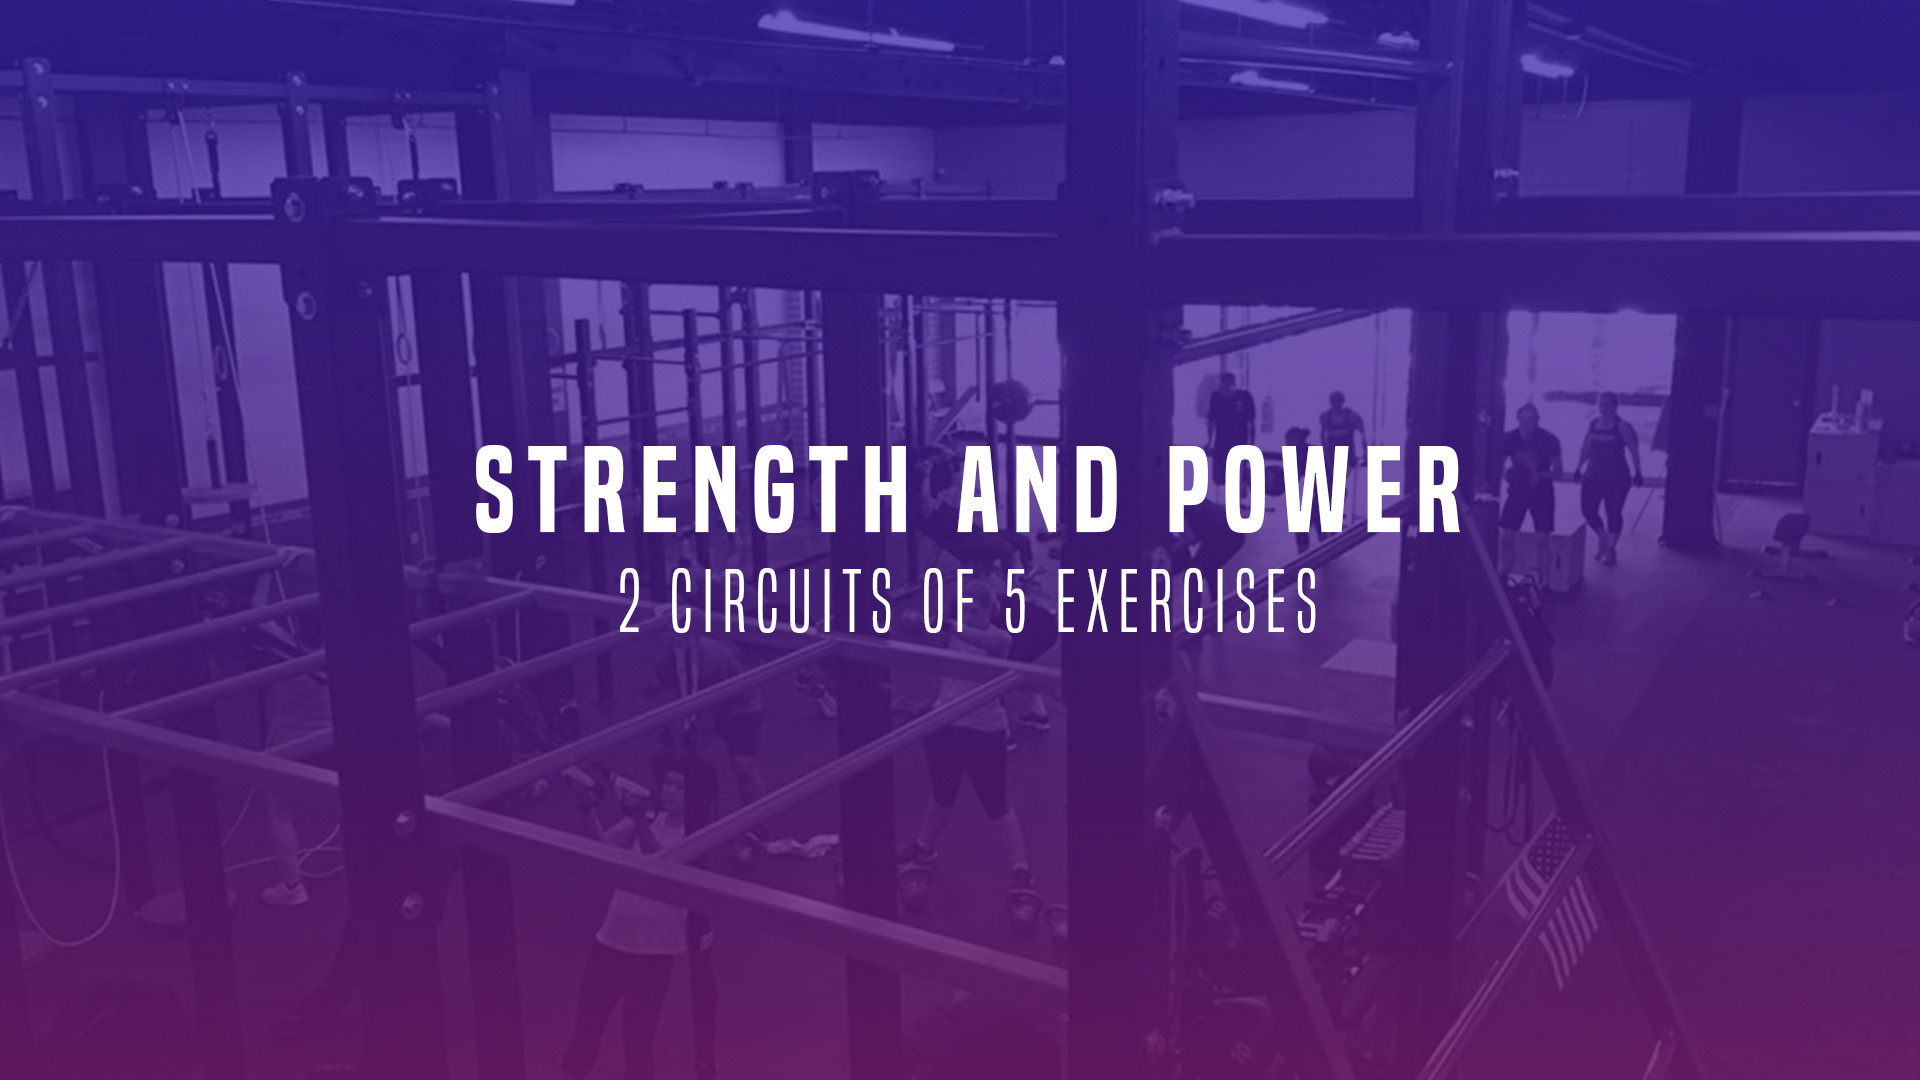 WOD 6: Strength and Power. 2 Circuits of 5 Exercises